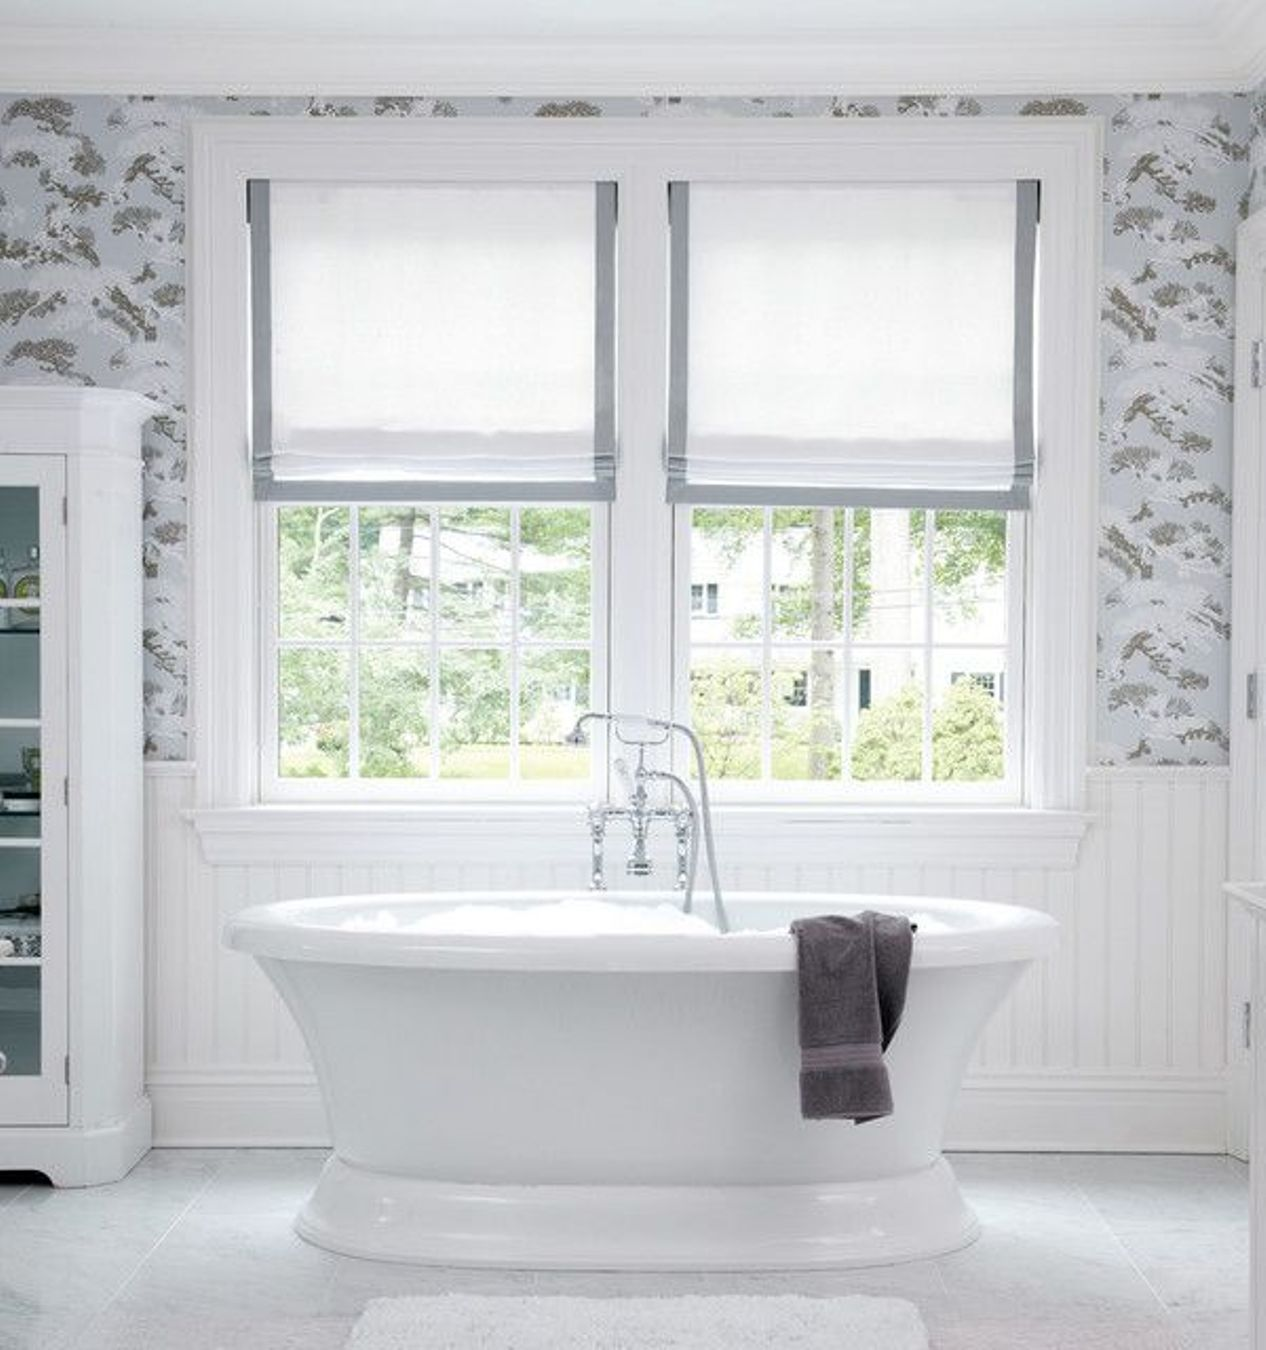 Modern bathroom window curtains ideas bathroom pelmat for Bathroom window curtains